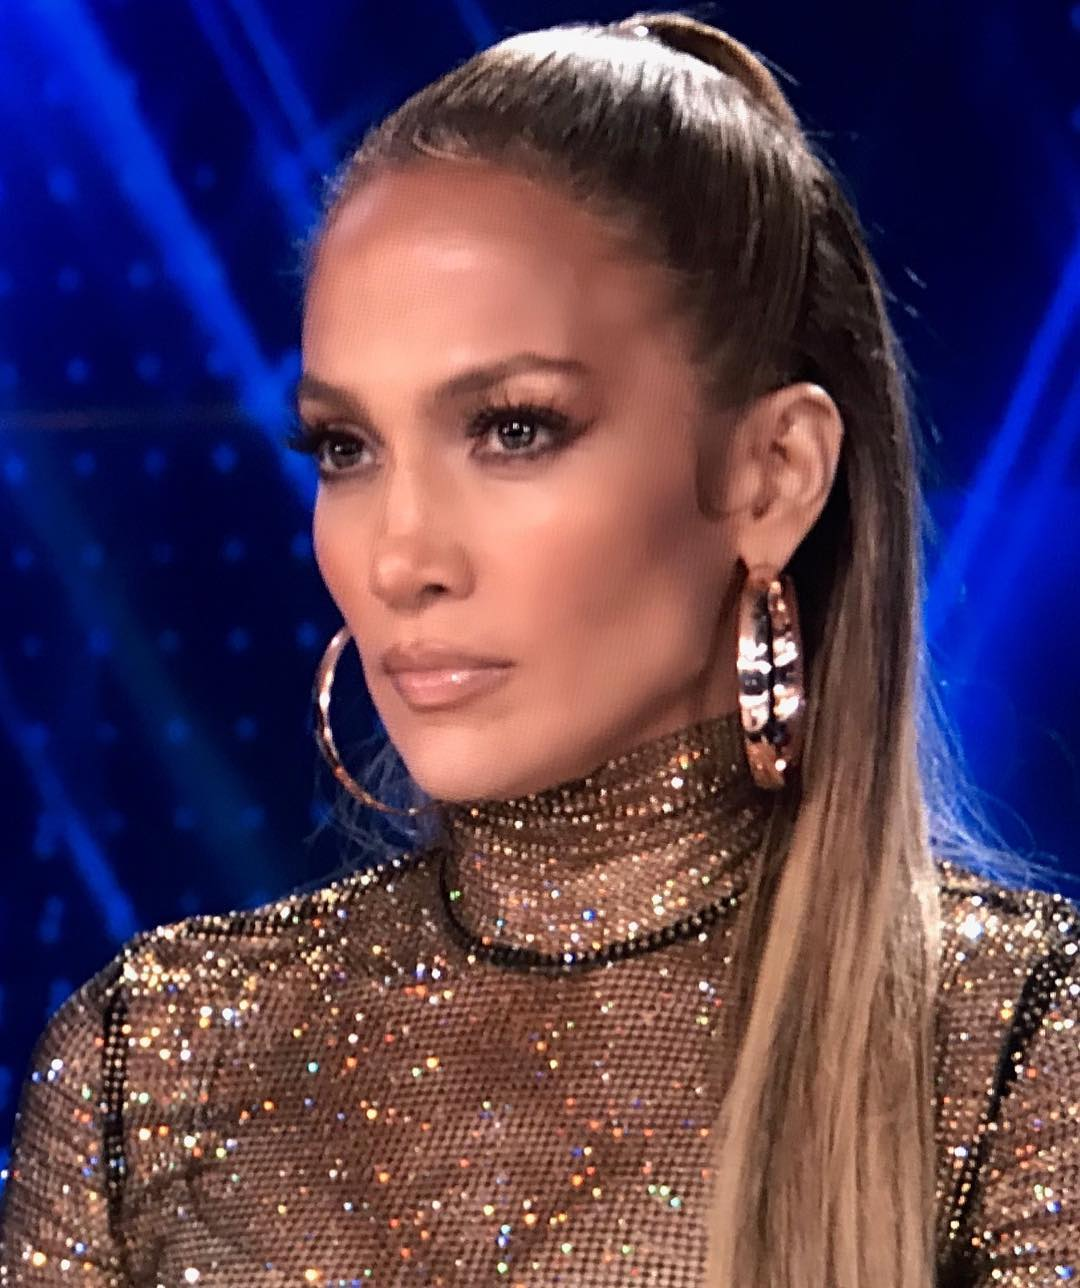 Jennifer Lopez With Sleek Ponytail And Glamour Makeup At NBC World Of Dance 2019